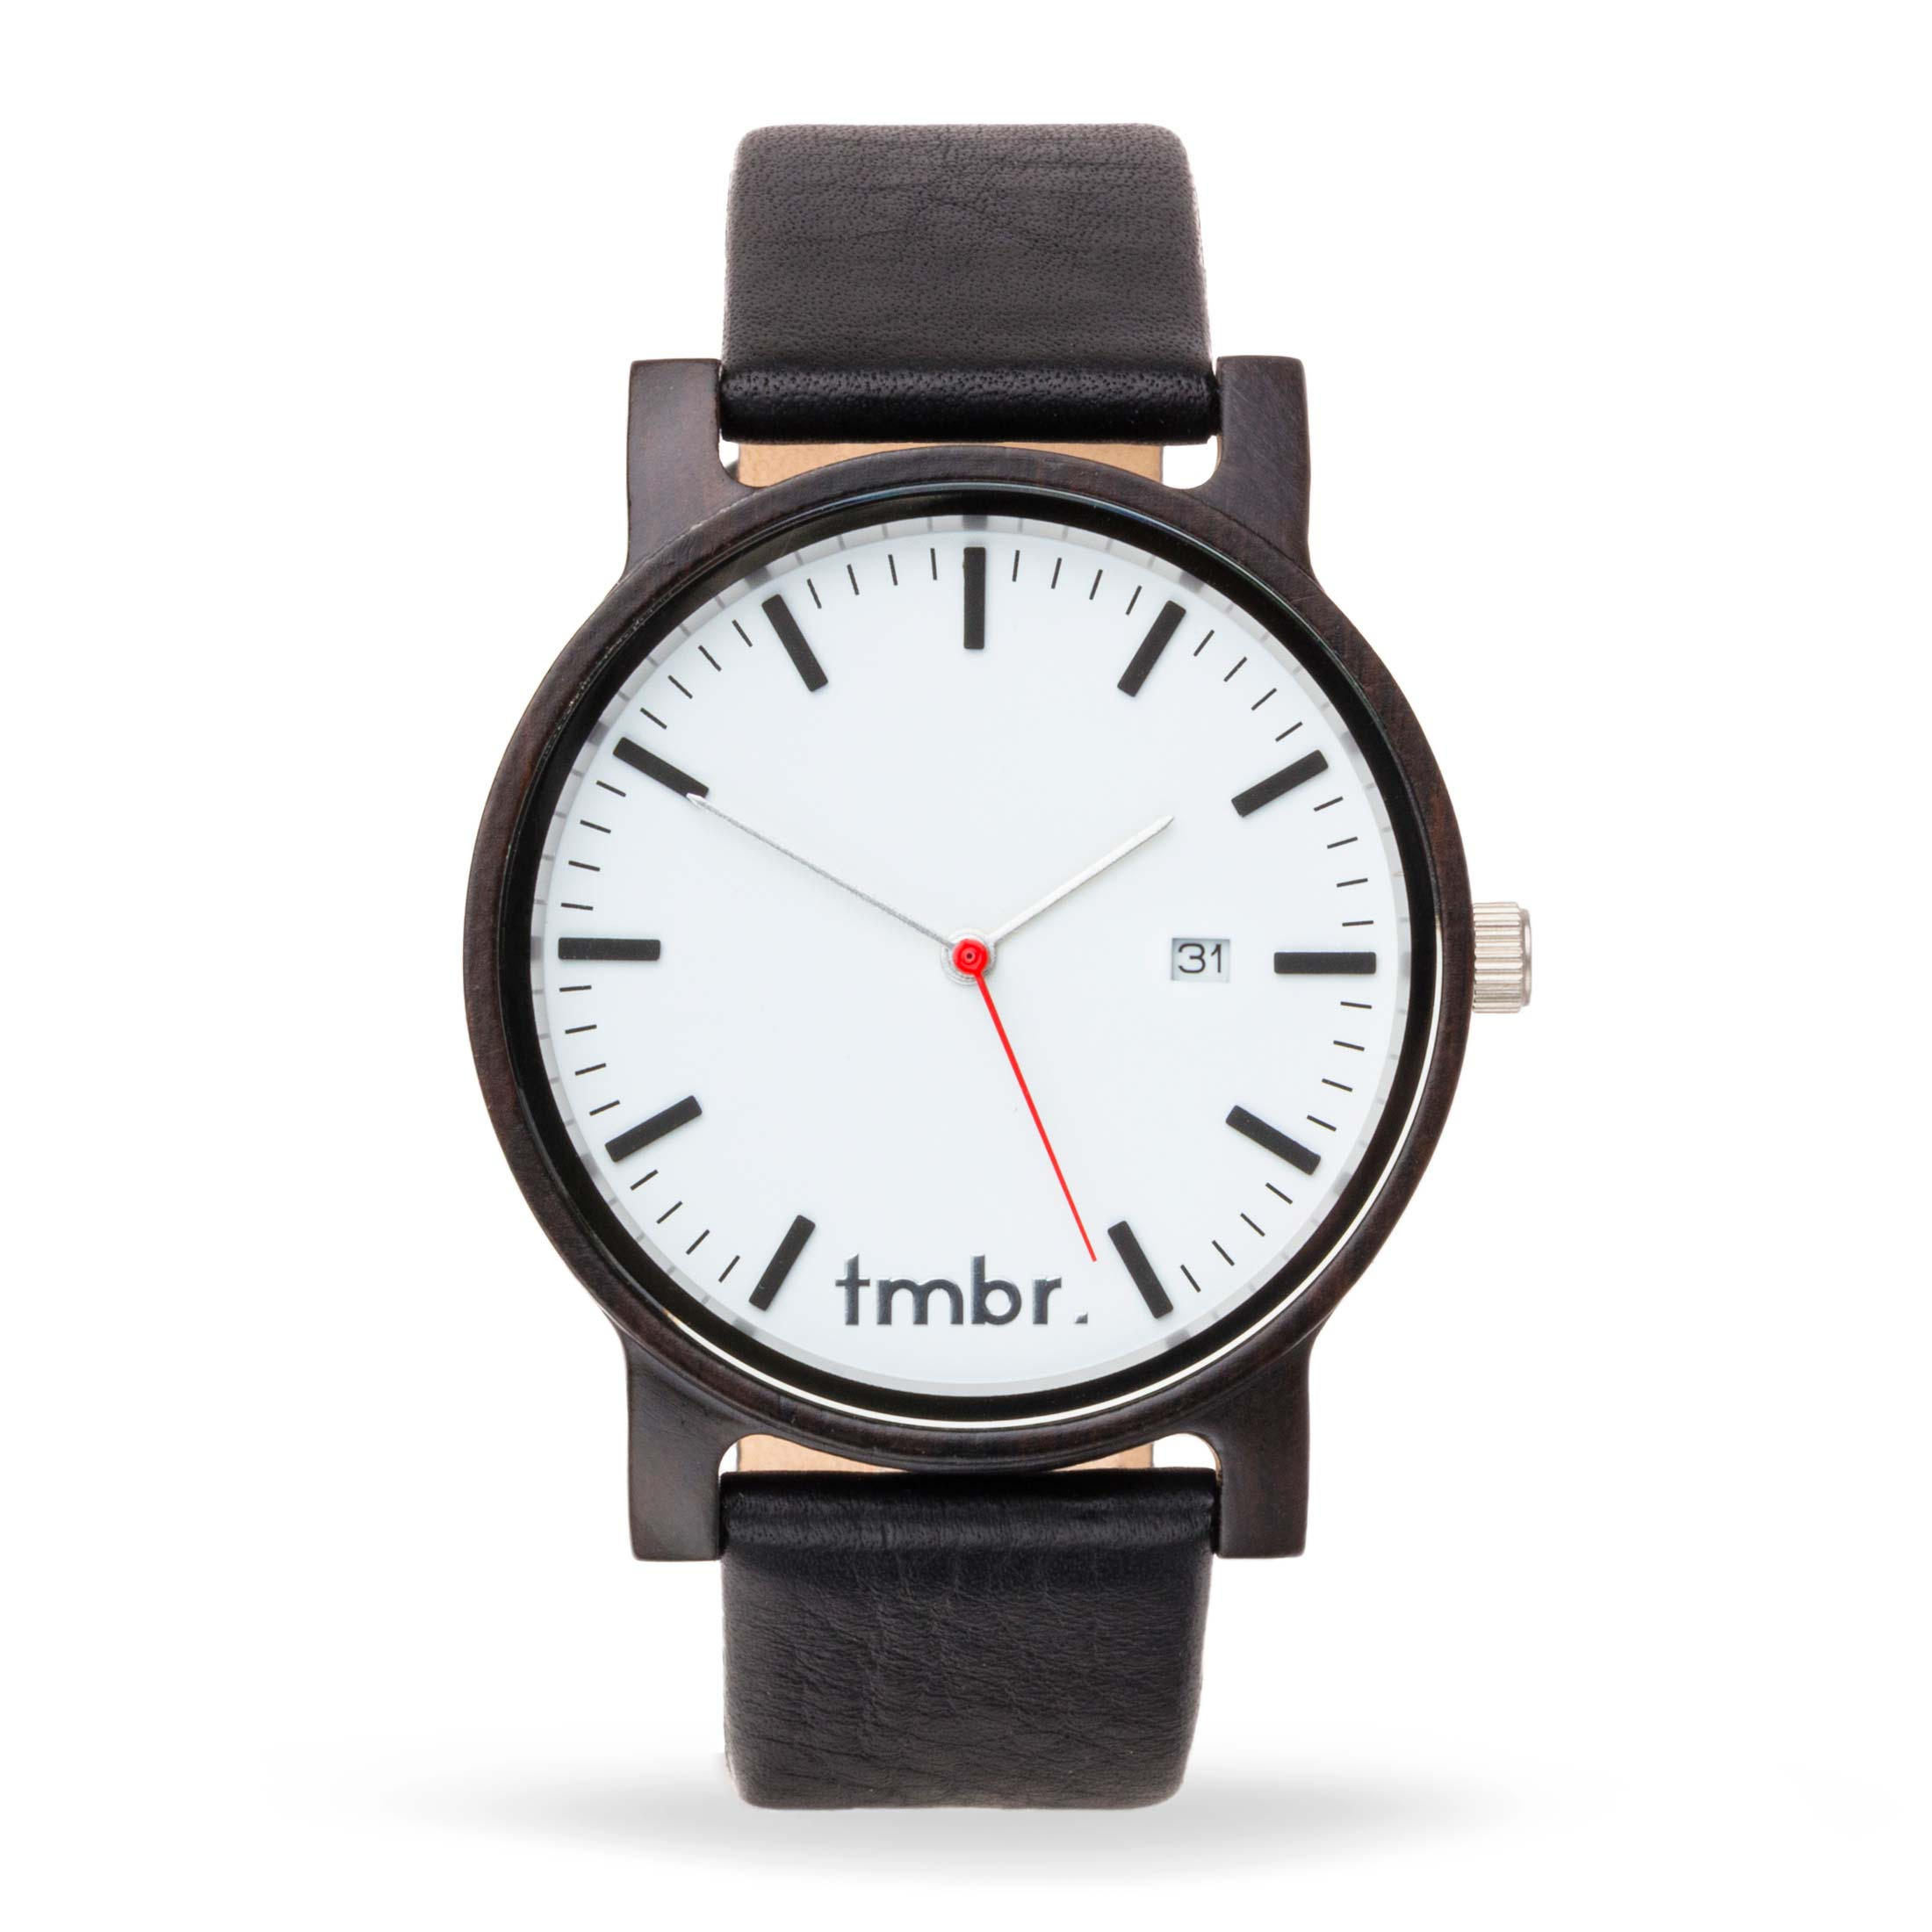 Tmbr Journeyman Wood Watch - Cascade White